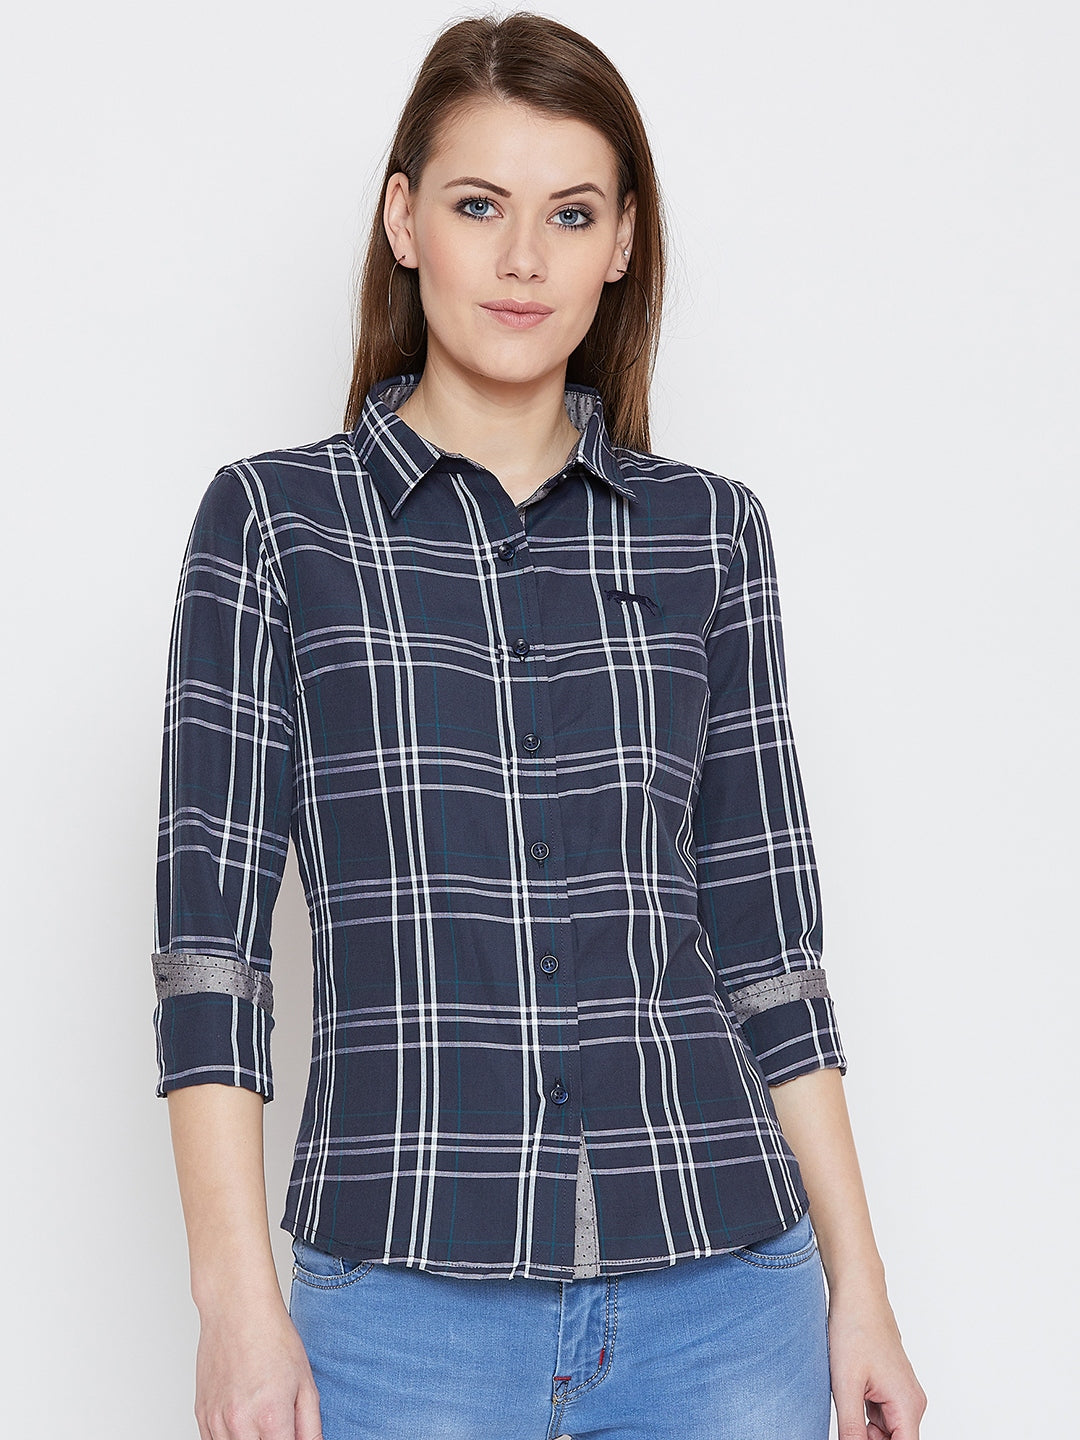 JUMP USA Women Navy Blue Checked Casual Shirt - JUMP USA